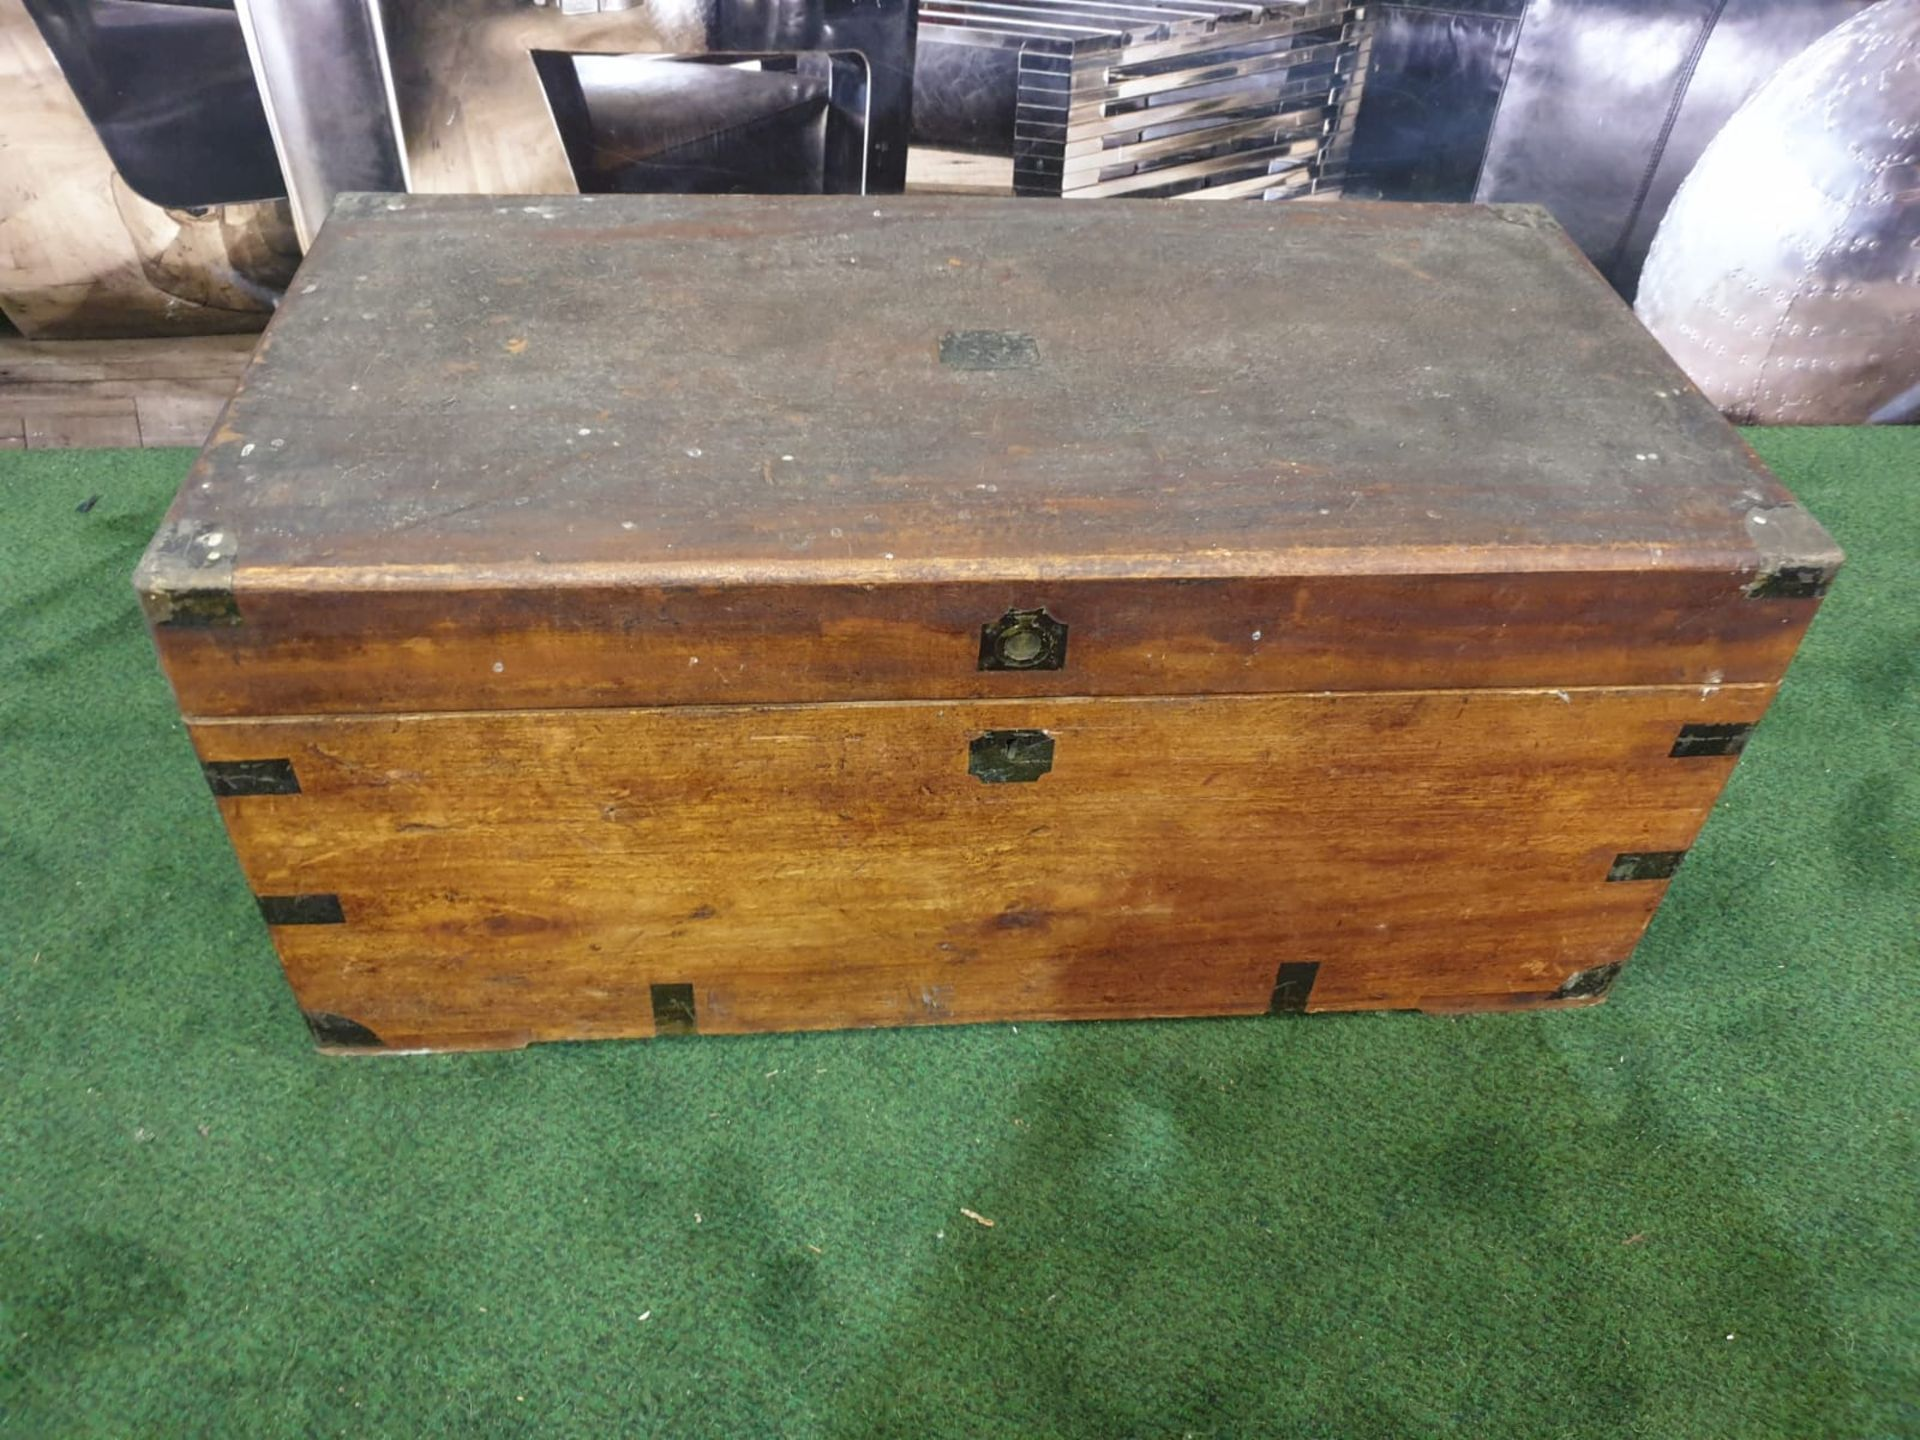 Oak Coffer or Travel Chest This mid-sized English oak coffer trunk is a pleasingly styled example